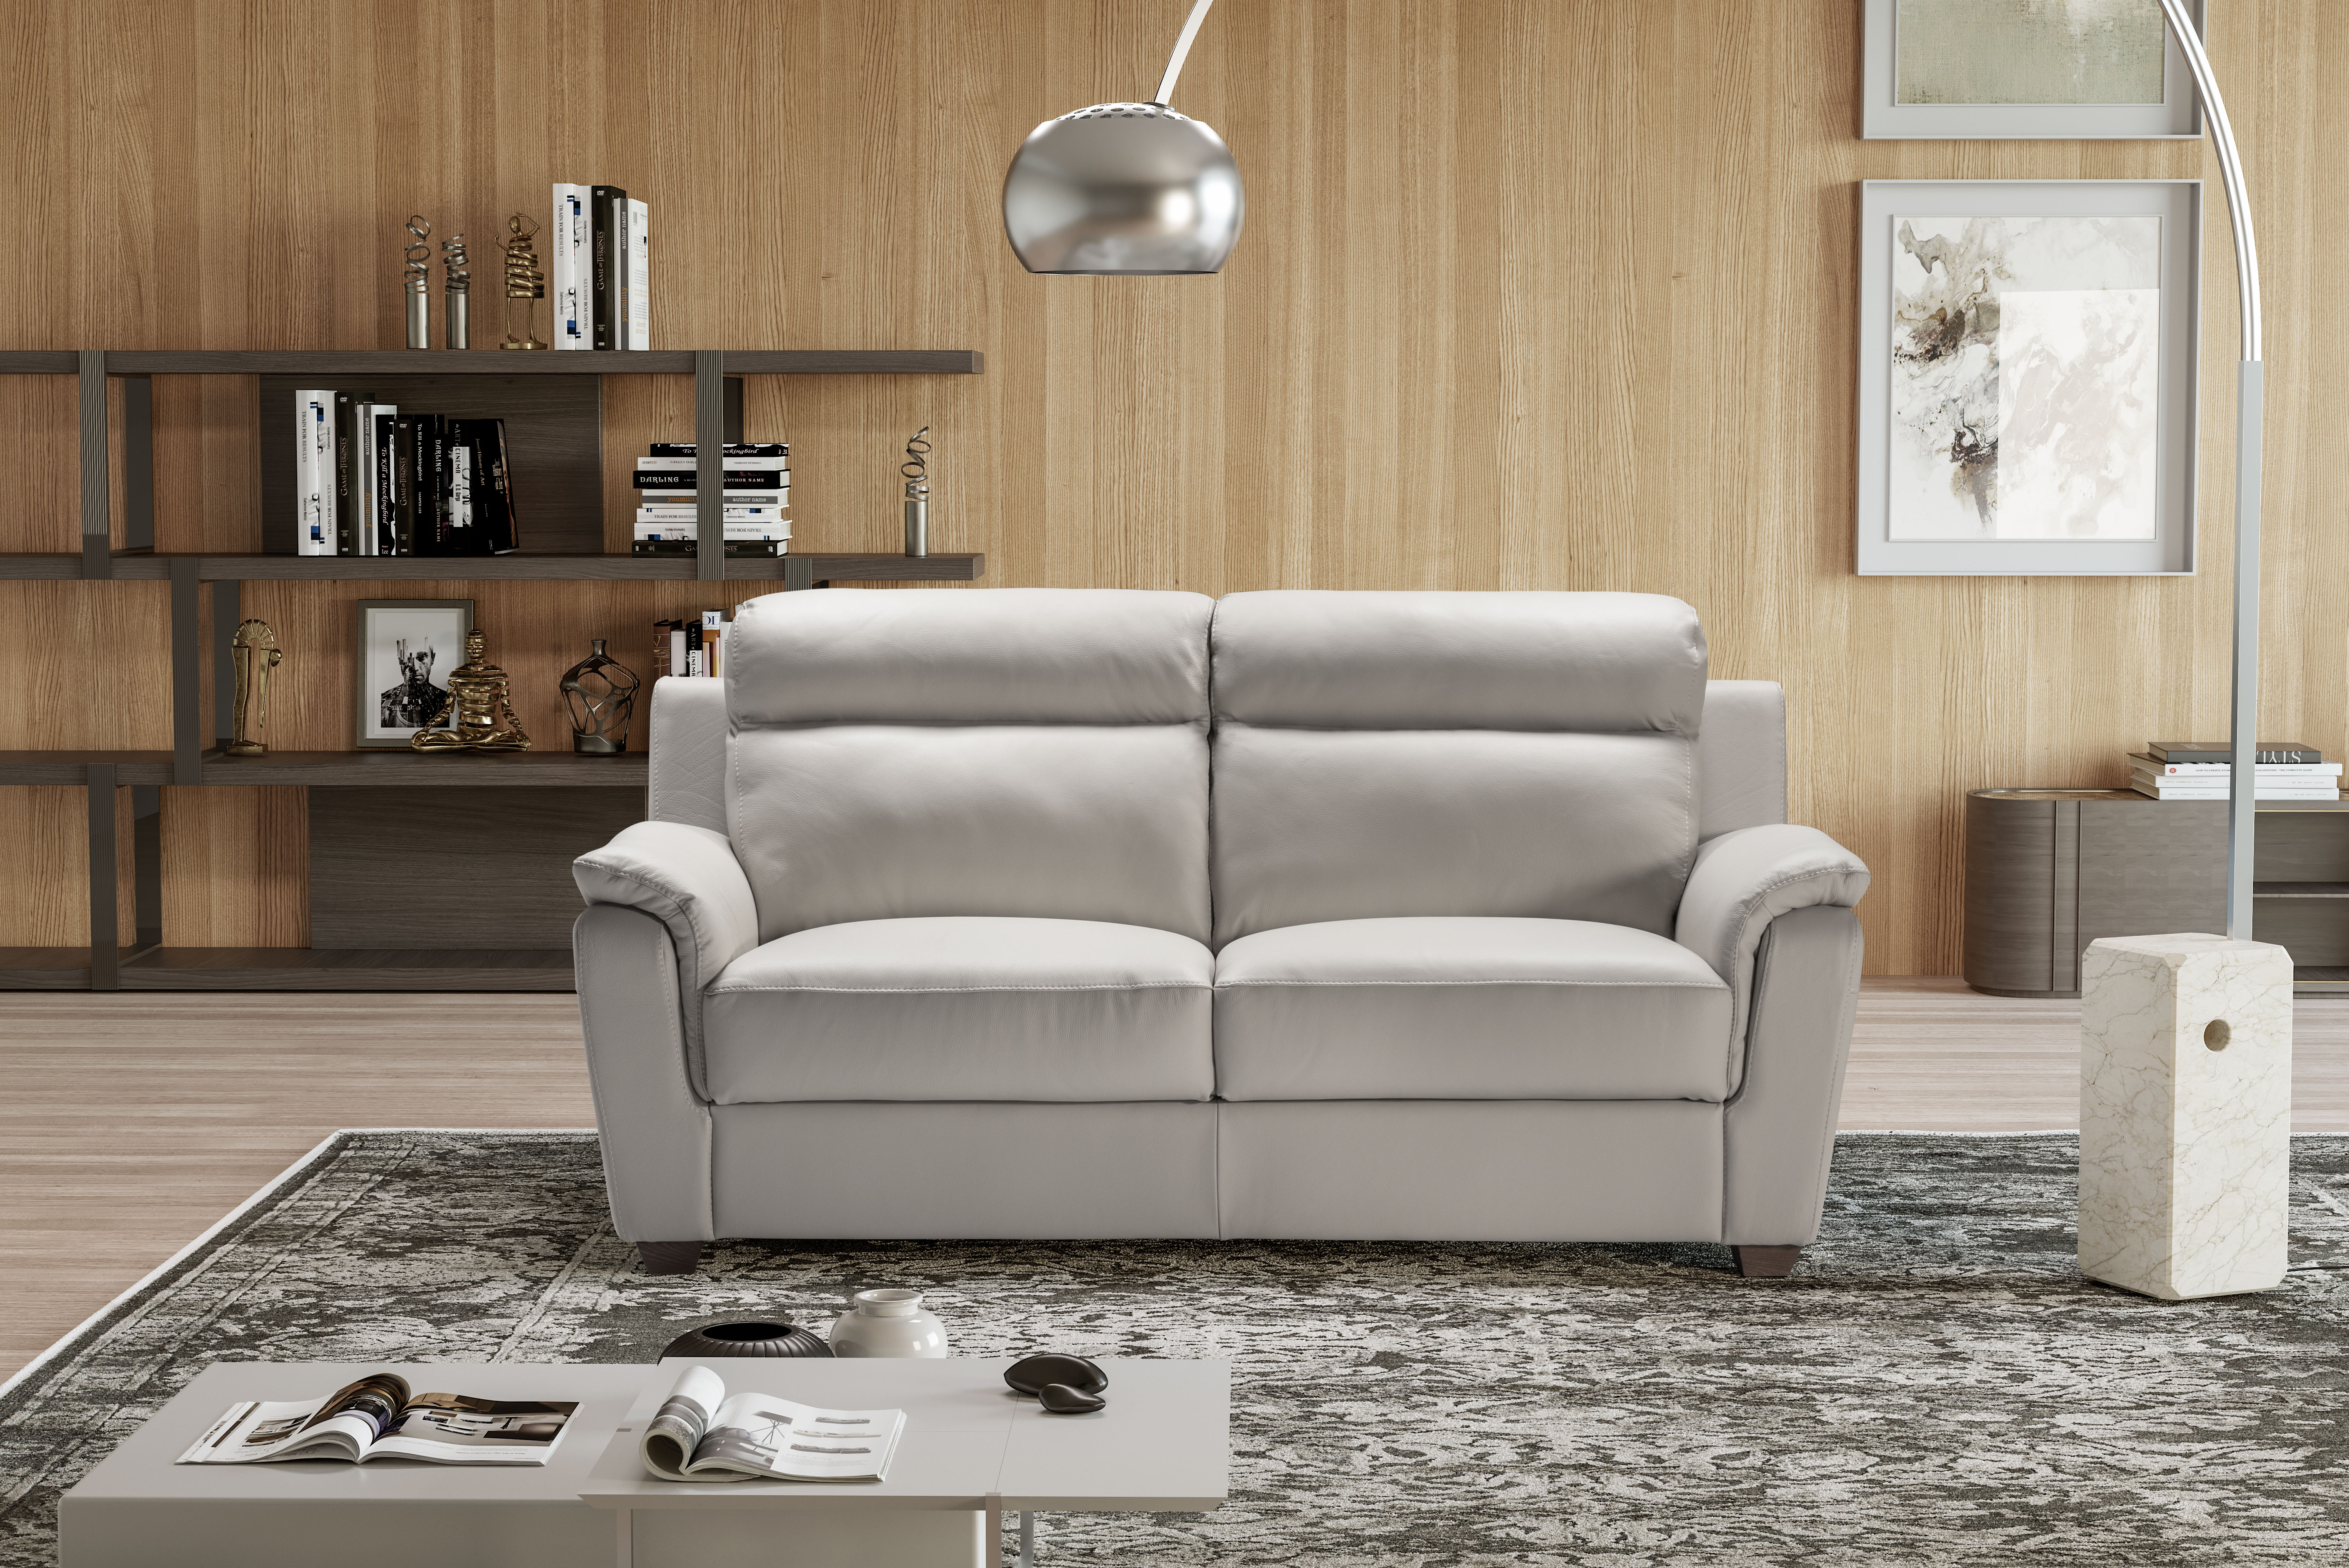 EDNA Italian Leather 3 & 2 Seat Sofas - Light Grey Cenere. RRP £3399 - Image 4 of 4